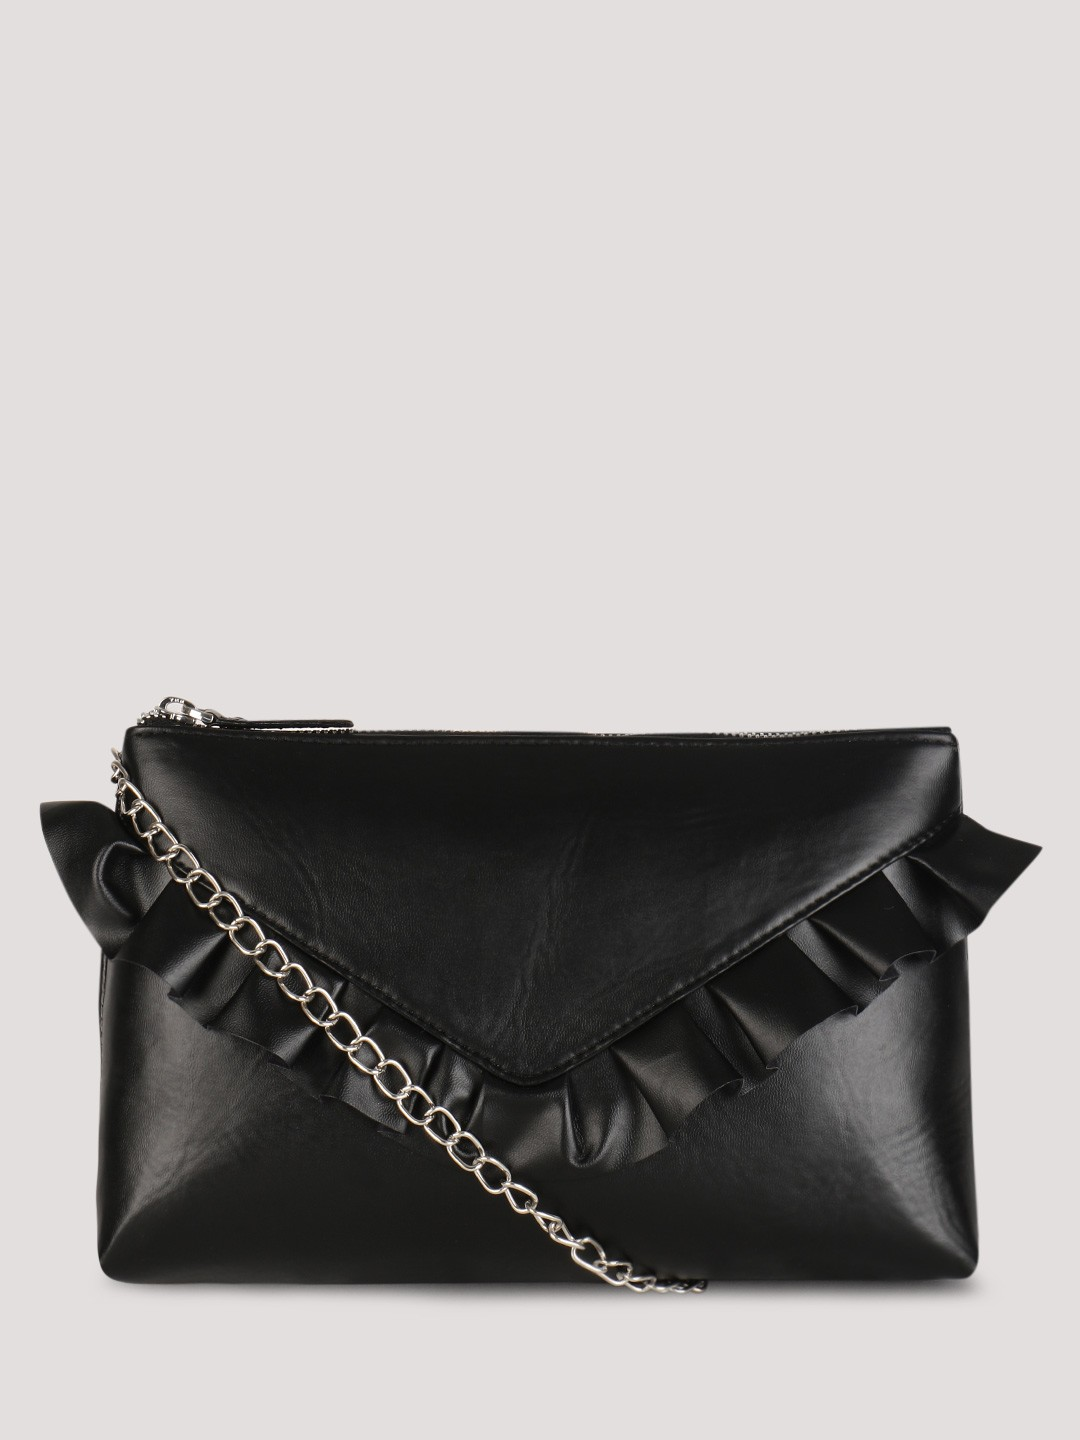 Our clutch with pretty Faux Pearls is a must-have party essential. The chic chain strap makes this bag versatile for day (wear as a crossbody or over-the-shoulder) and for night (use as a clutch) looks. Black clutch with Faux Pearls Kisslock closure with goldtone hardware Chain shoulder strap with 21